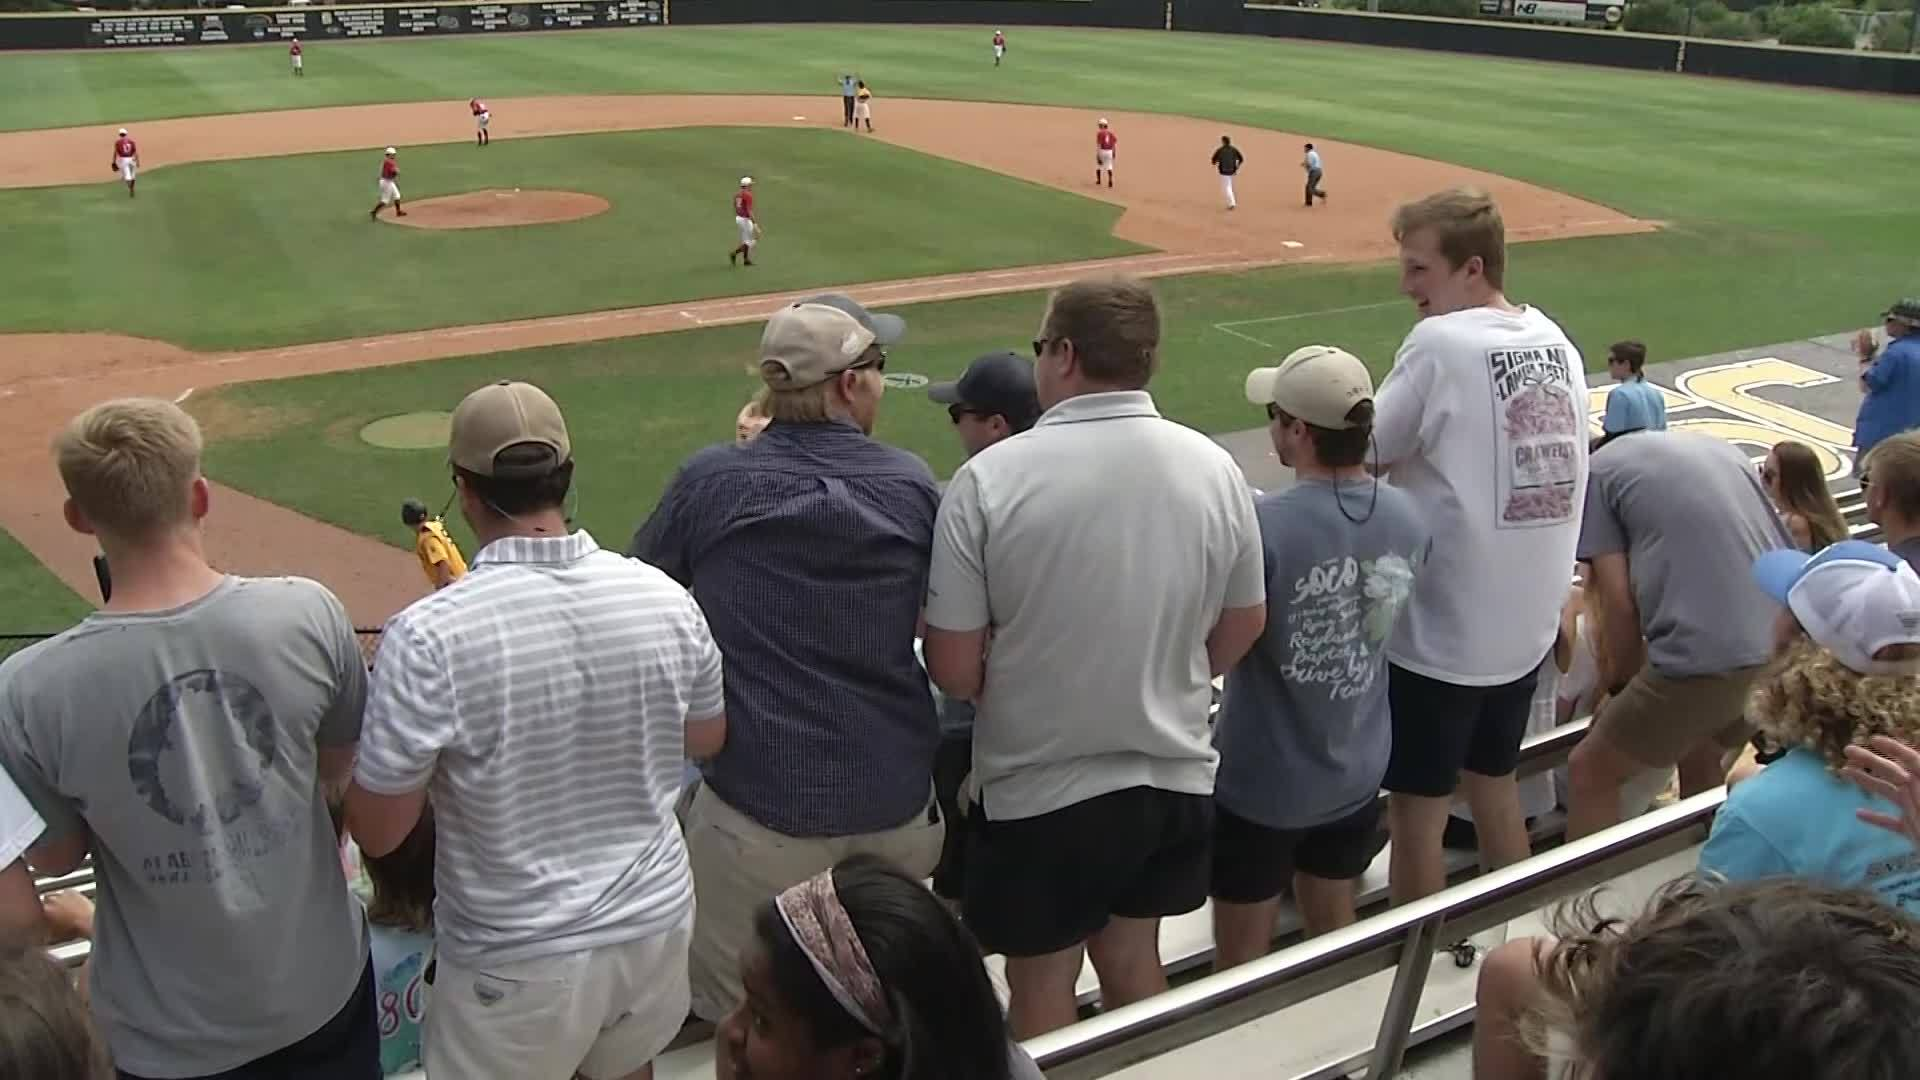 Birmingham Southern Panthers baseball team advances to Super Regional defeating LaGrange College